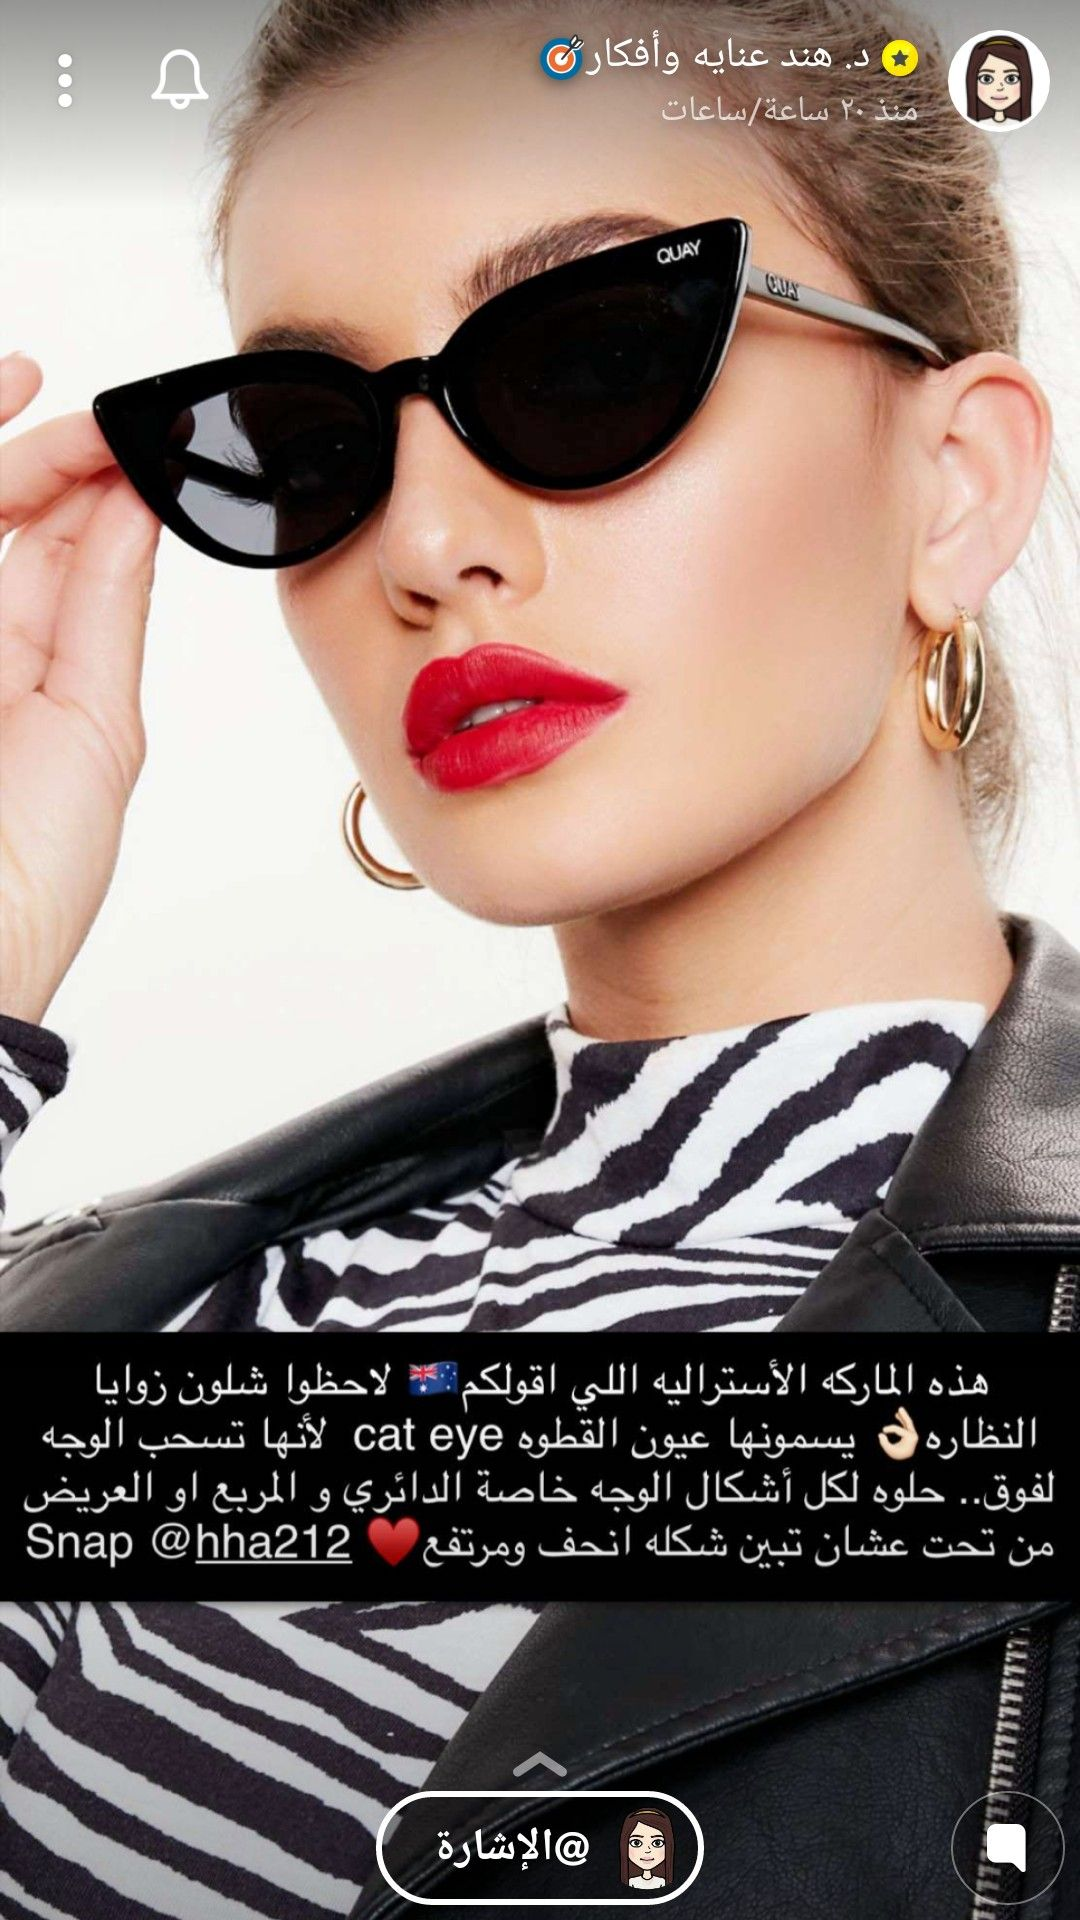 Pin By Raneem On د هند عنايه وافكار Trending Sunglasses Cat Eye Sunglasses Sunglasses